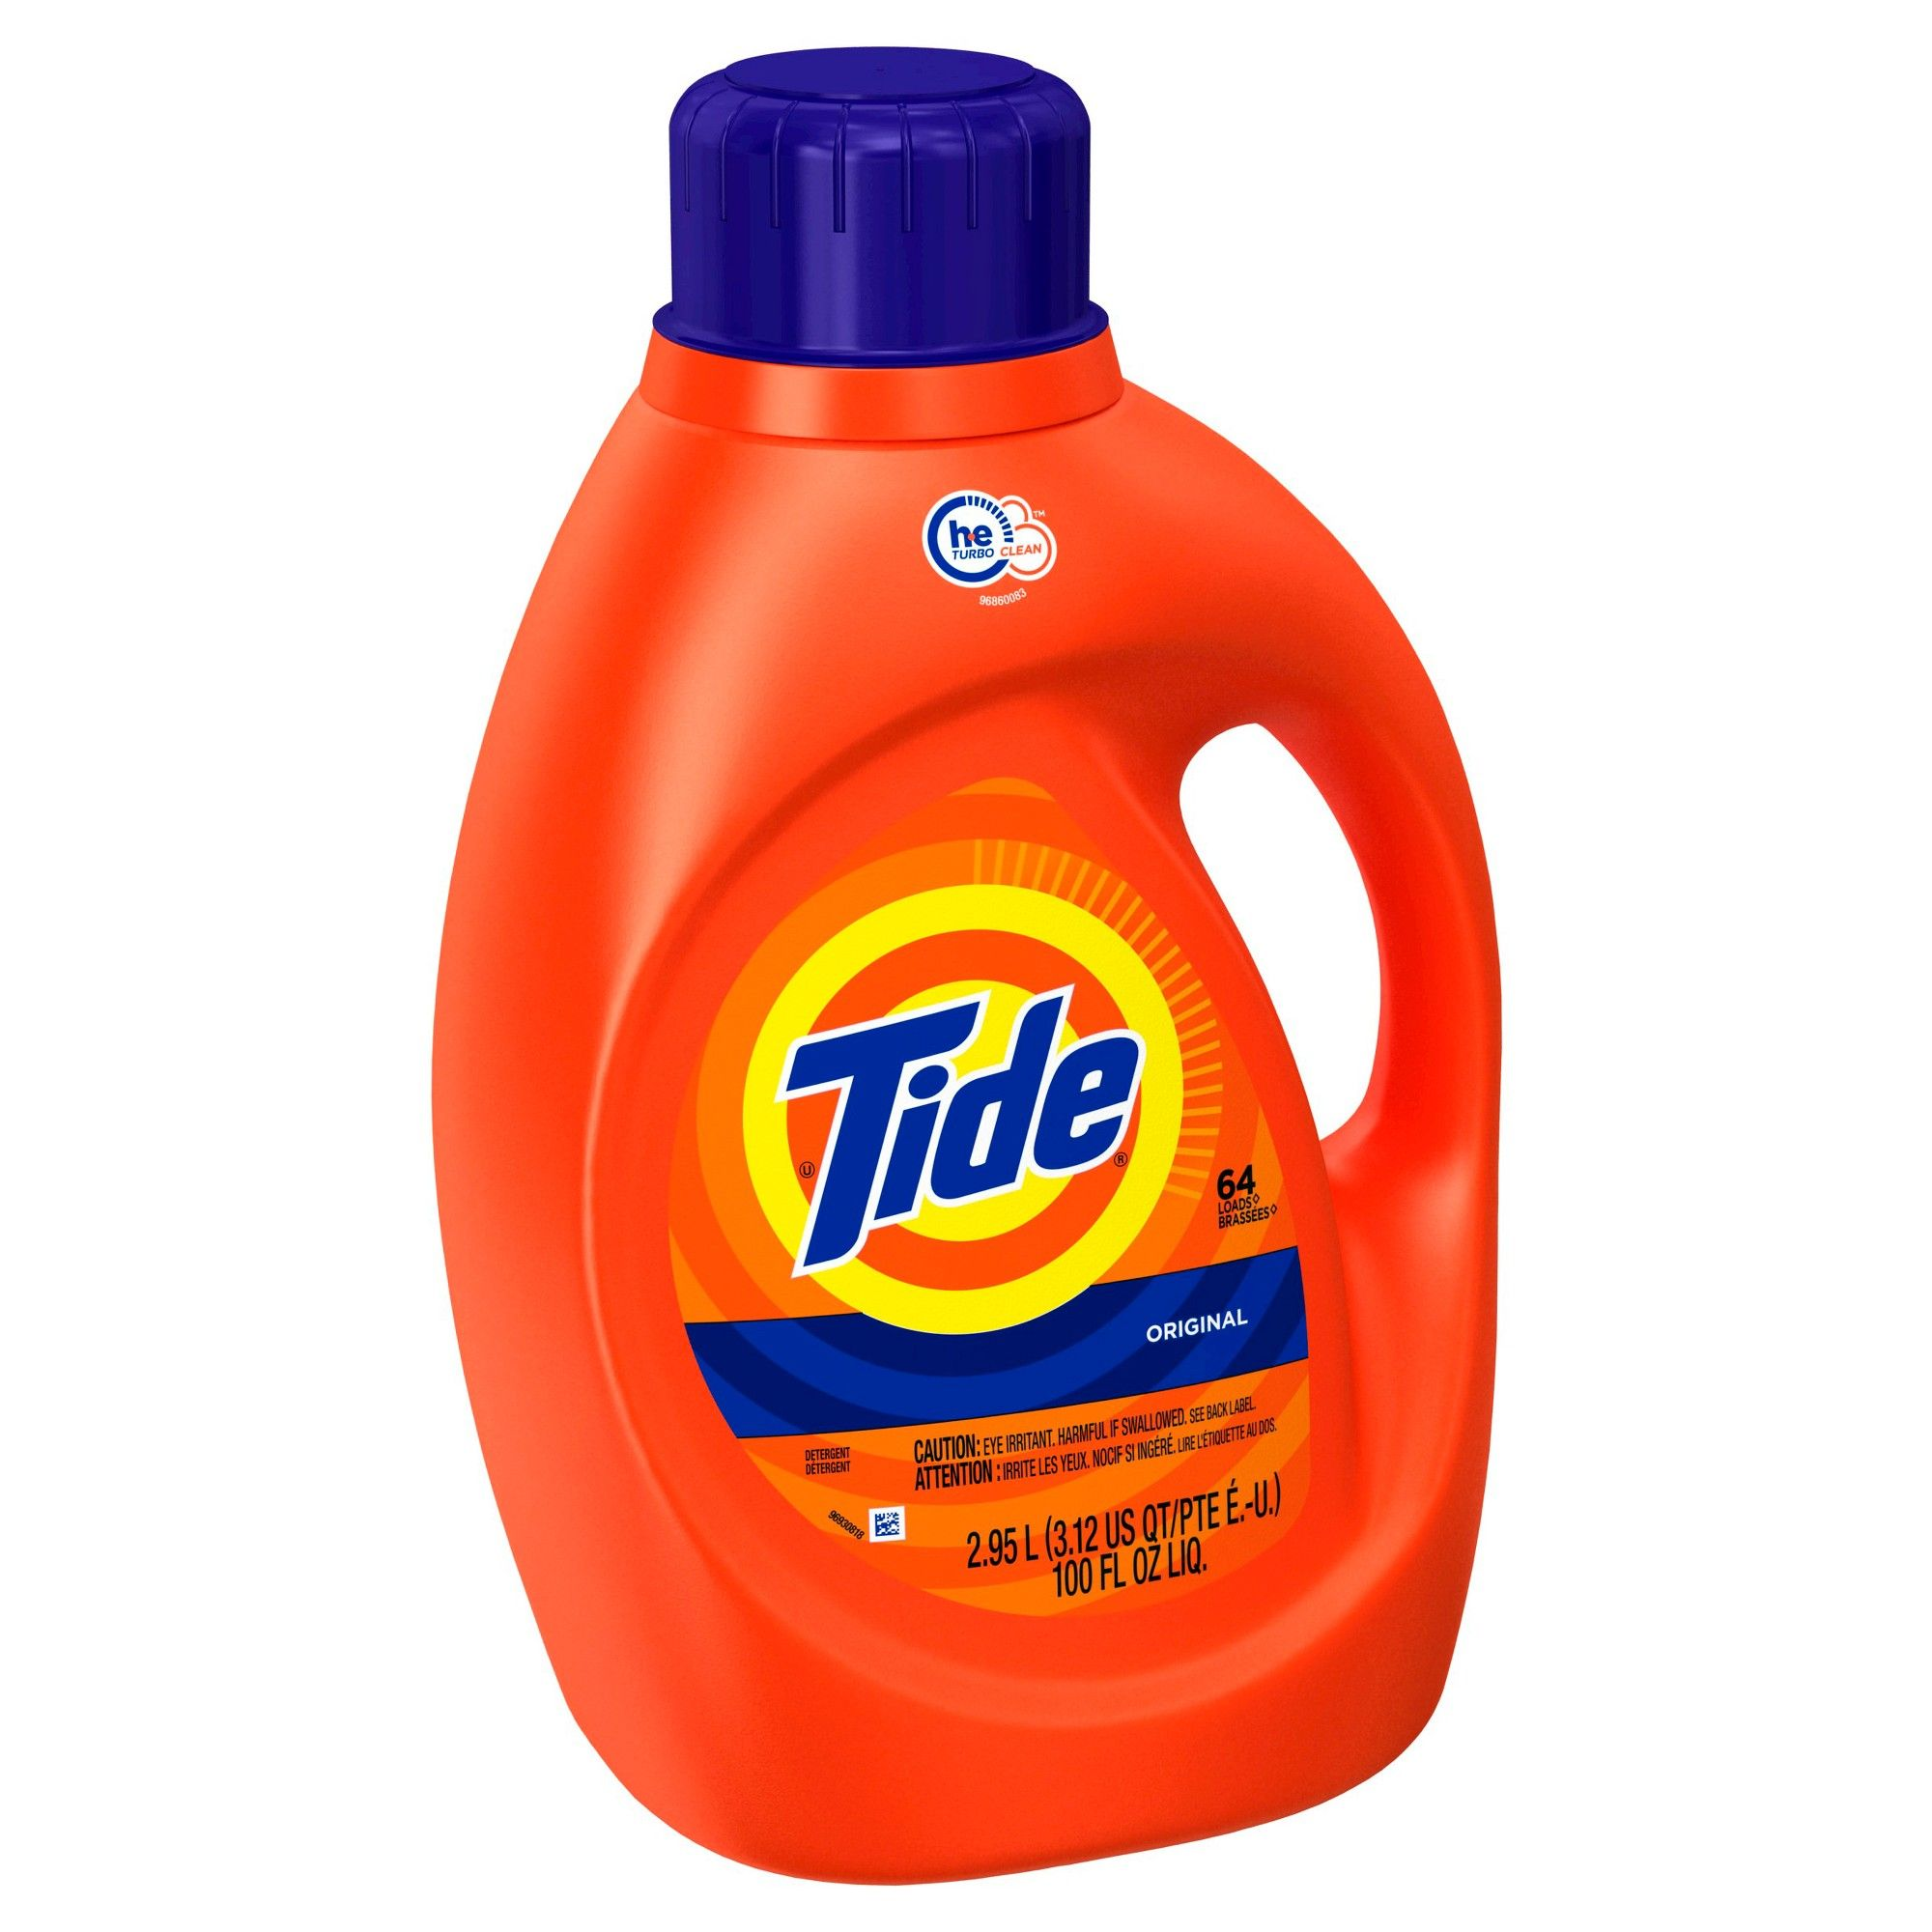 Tide Original He Liquid Laundry Detergent 92 Fl Oz Laundry